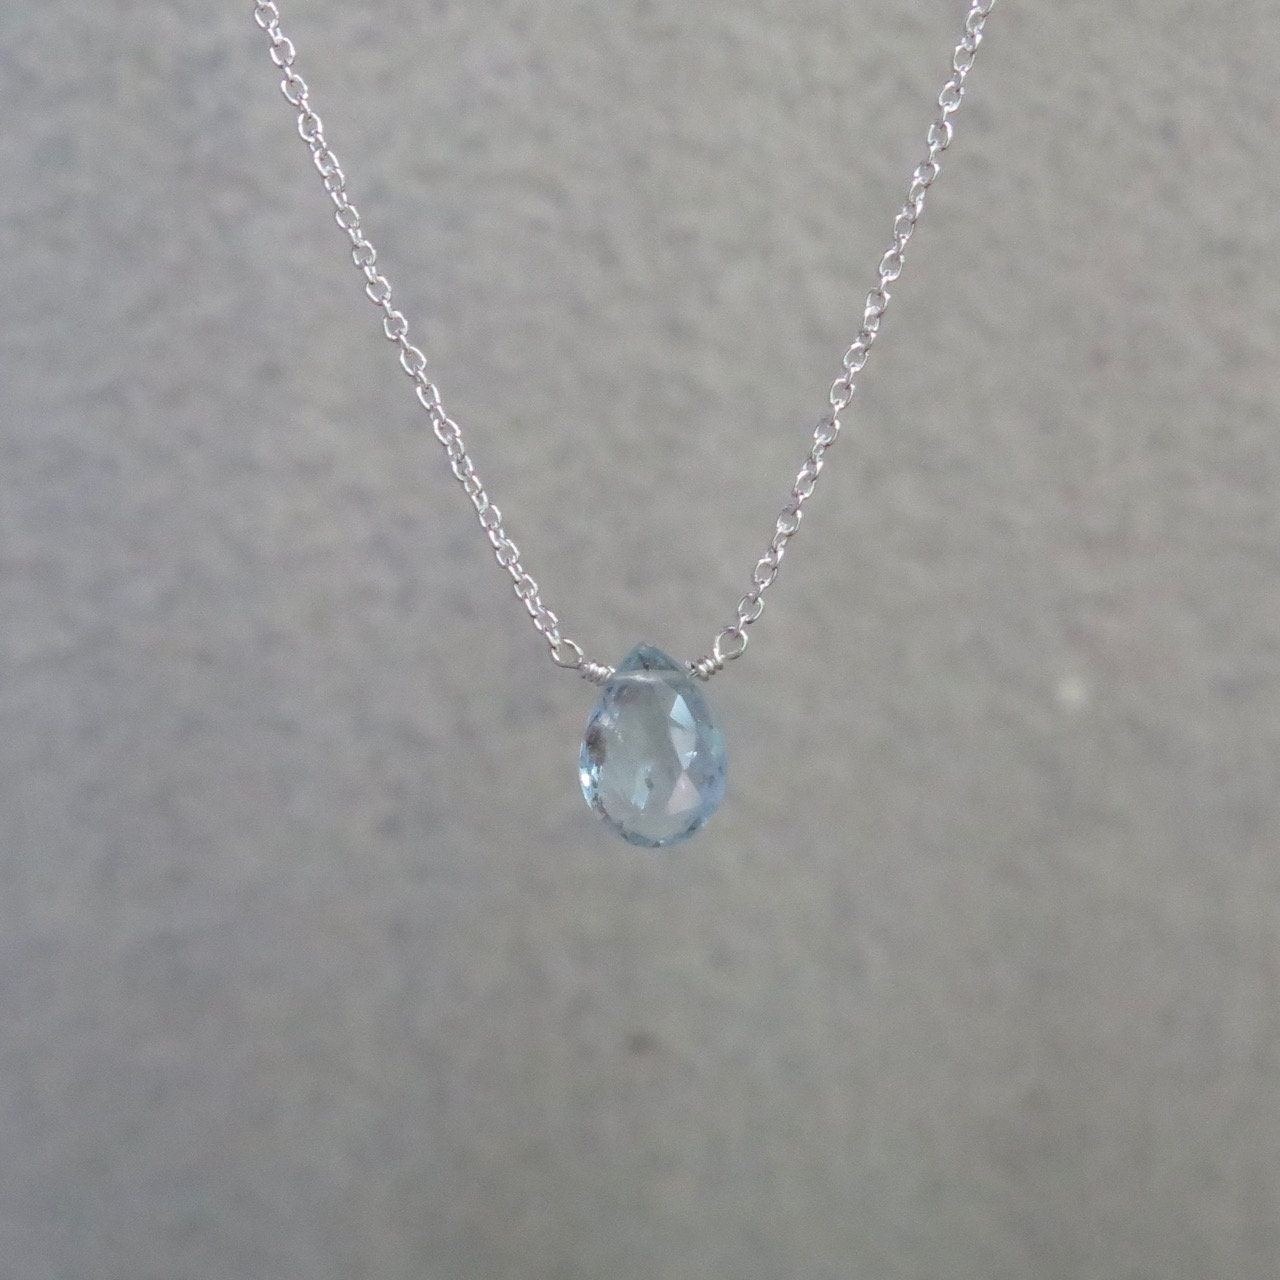 sterling silver or gold filled tiny aquamarine aquamarine pear March birthstone necklace Aquamarine necklace natural aquamarine